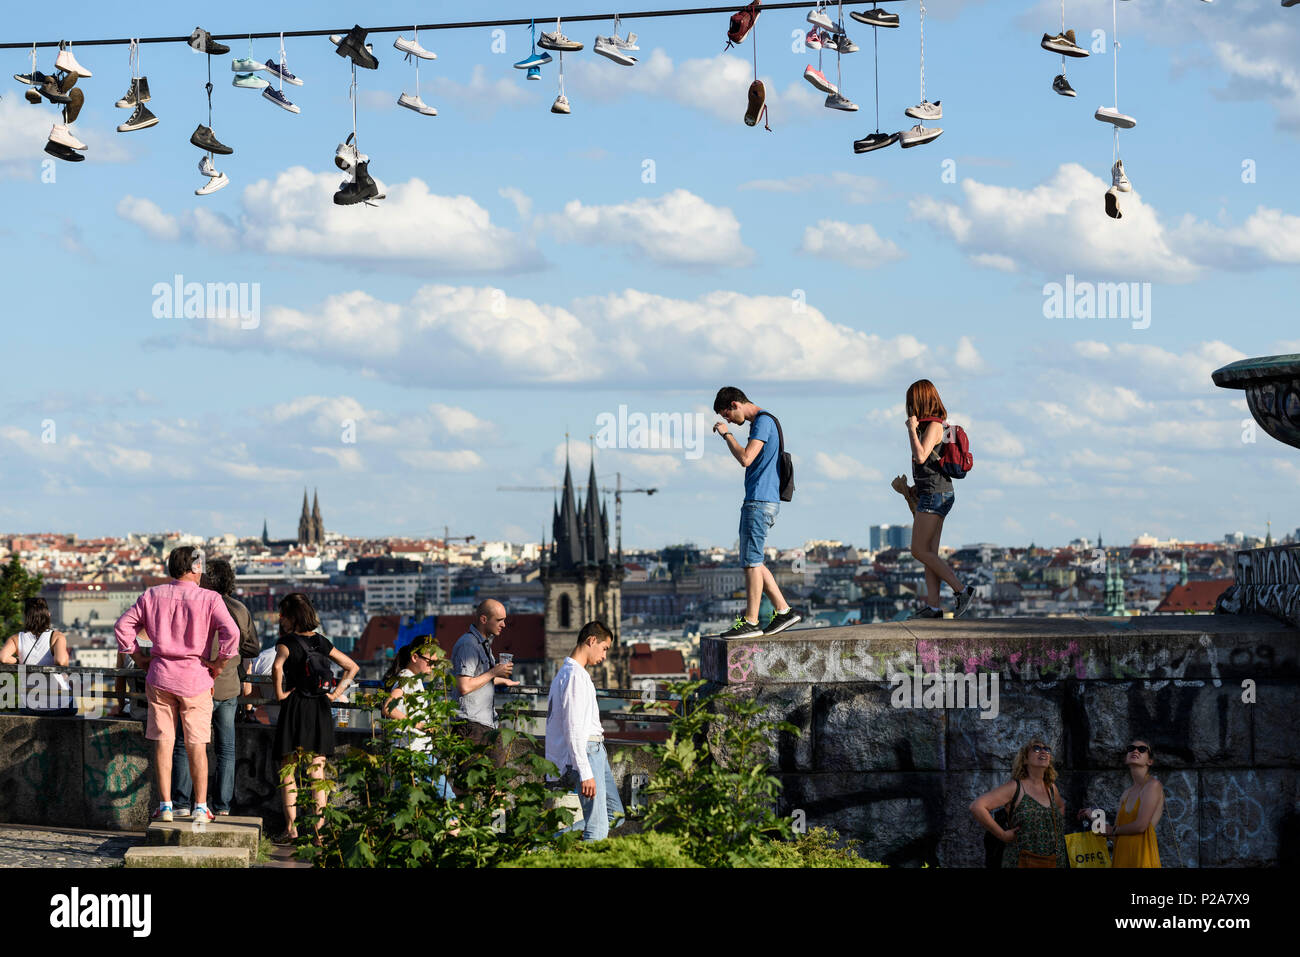 Prague. Czech Republic. People at Letná Park, which provides a viewpoint for views across the city. - Stock Image